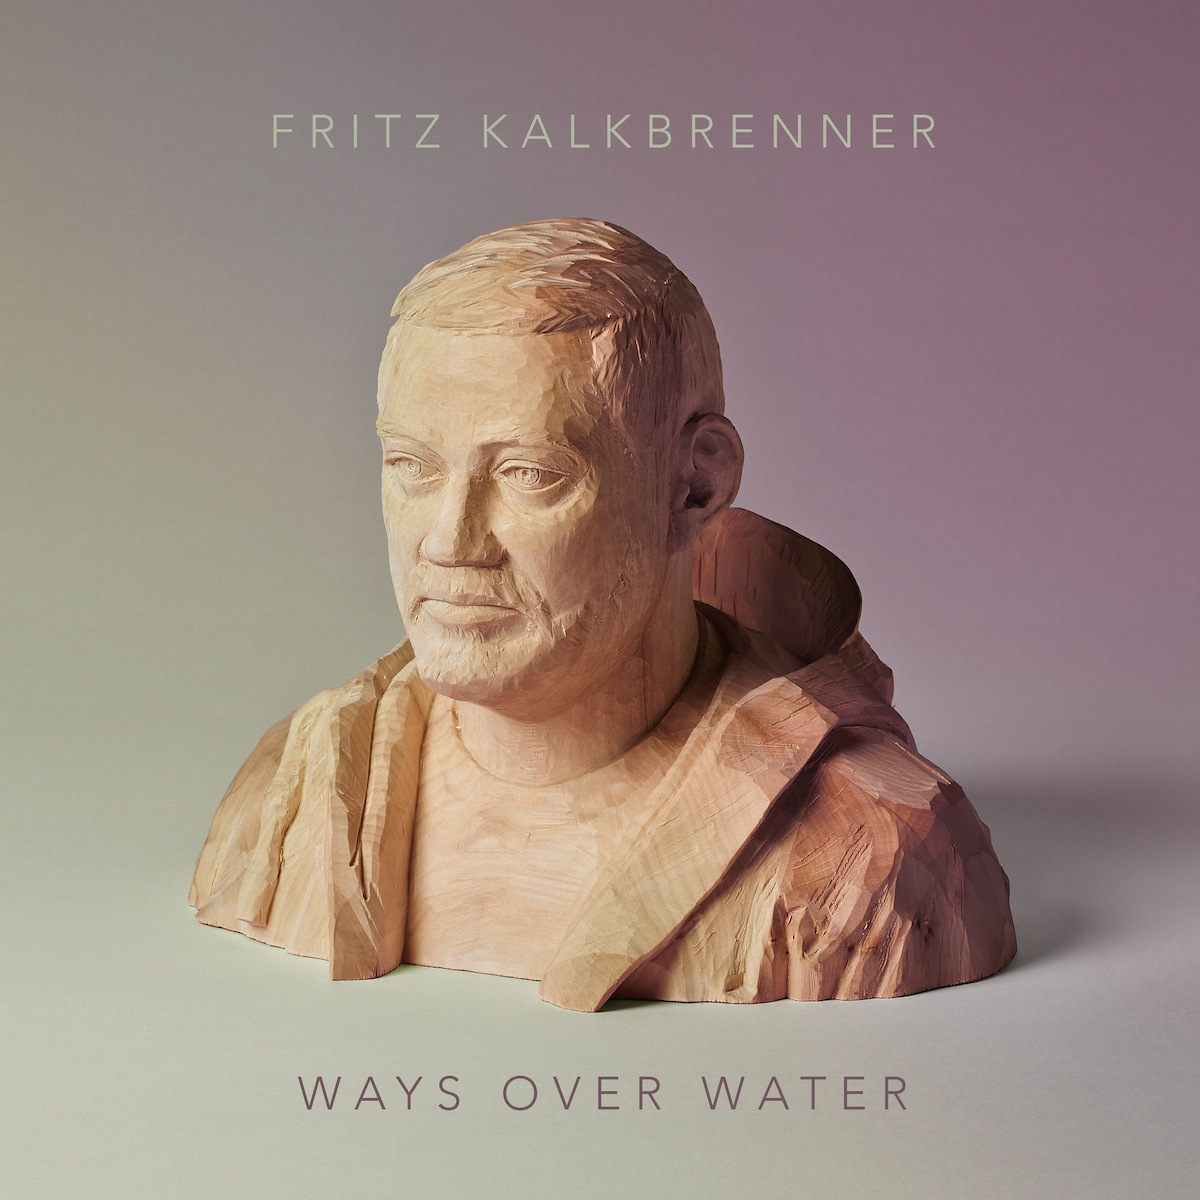 FK_WaysOverWater_Albumcover2400px_72dpi